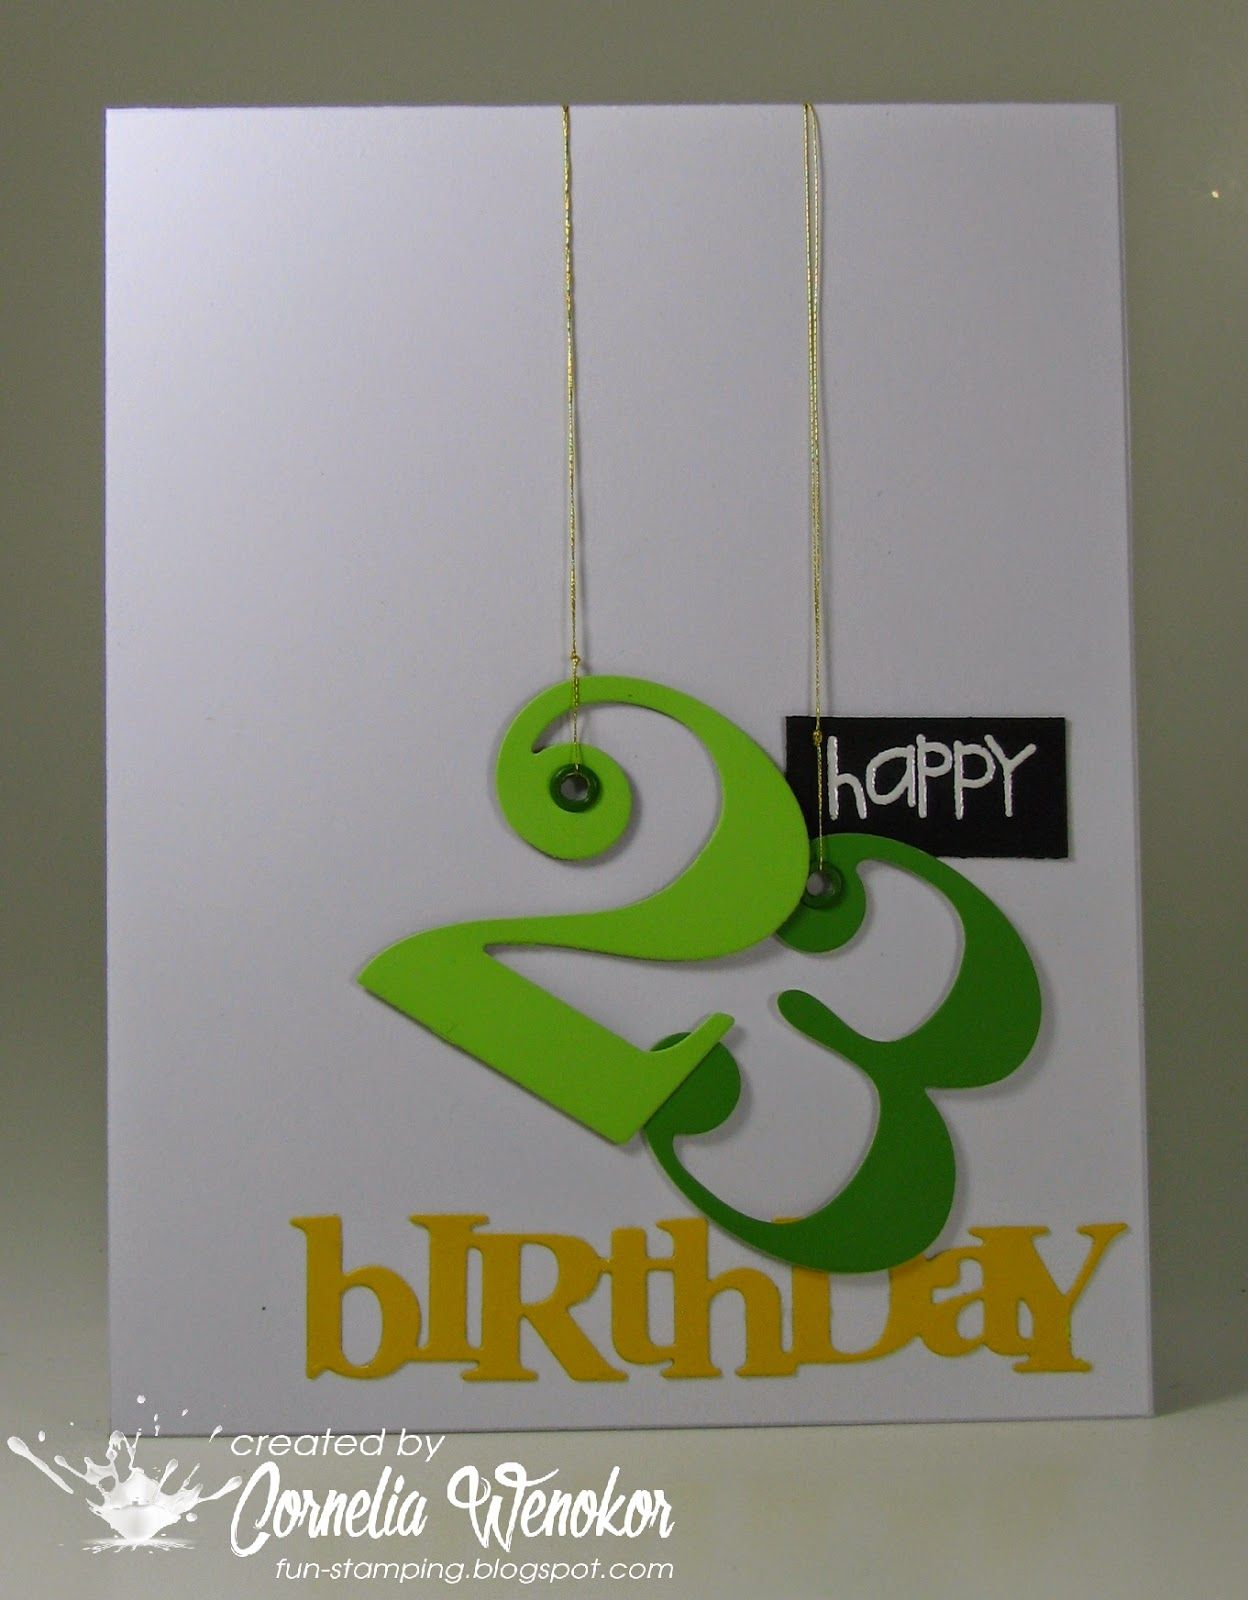 Stempel spass eyelet birthday card rajanius birthday pinterest